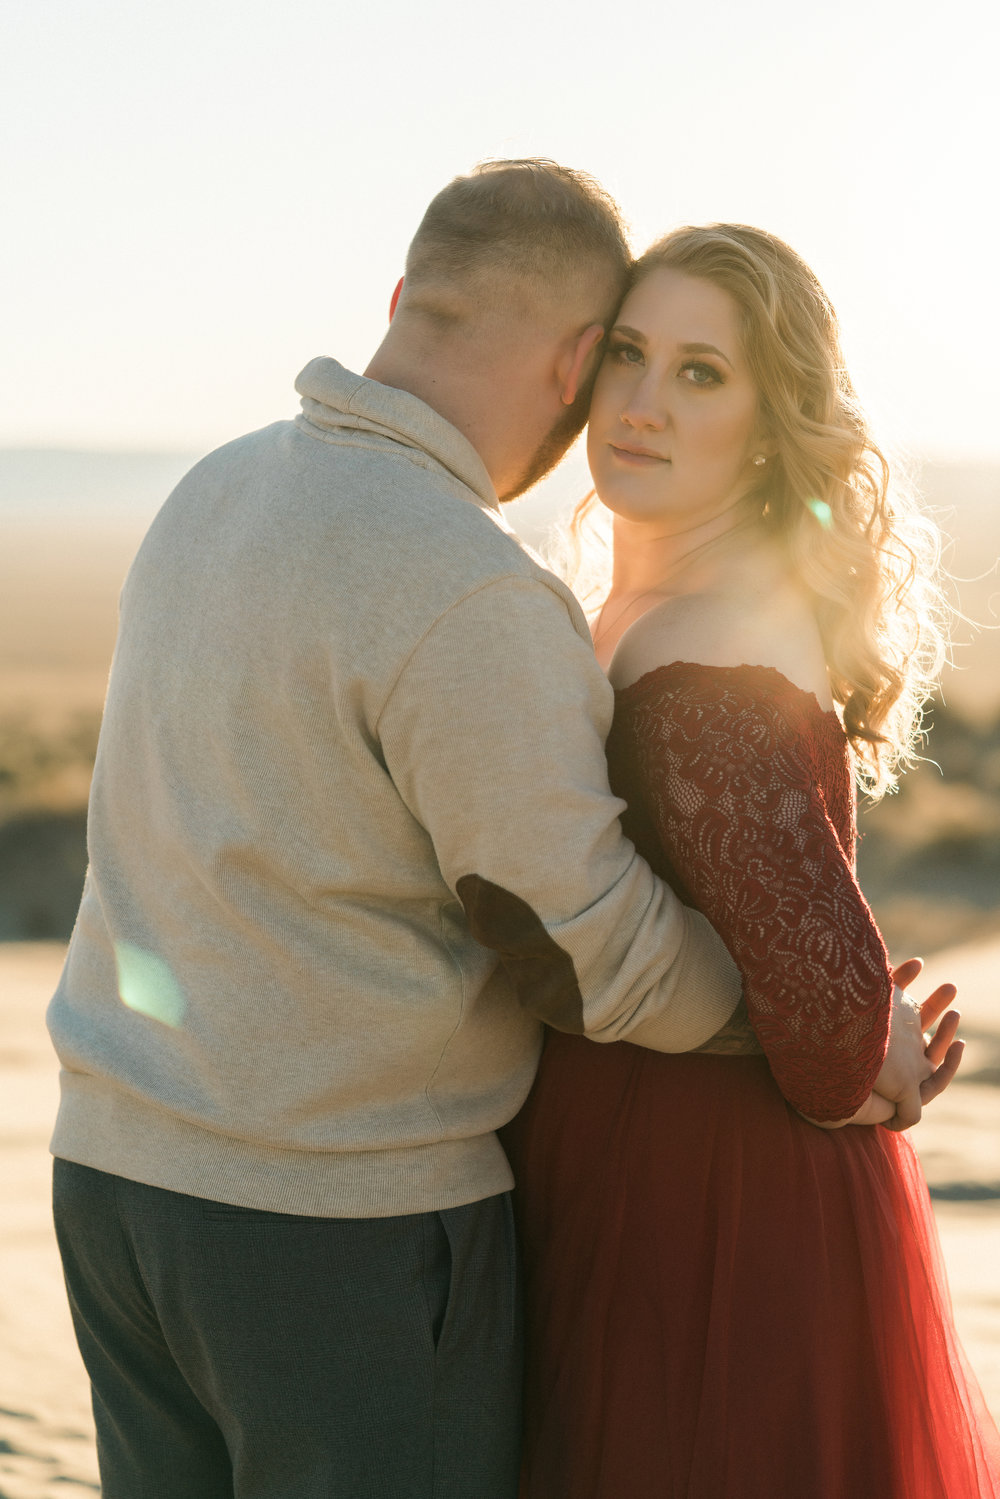 NewMexico-Sand-Dunes-Engagement-Carissa-and-Ben-1167.jpg